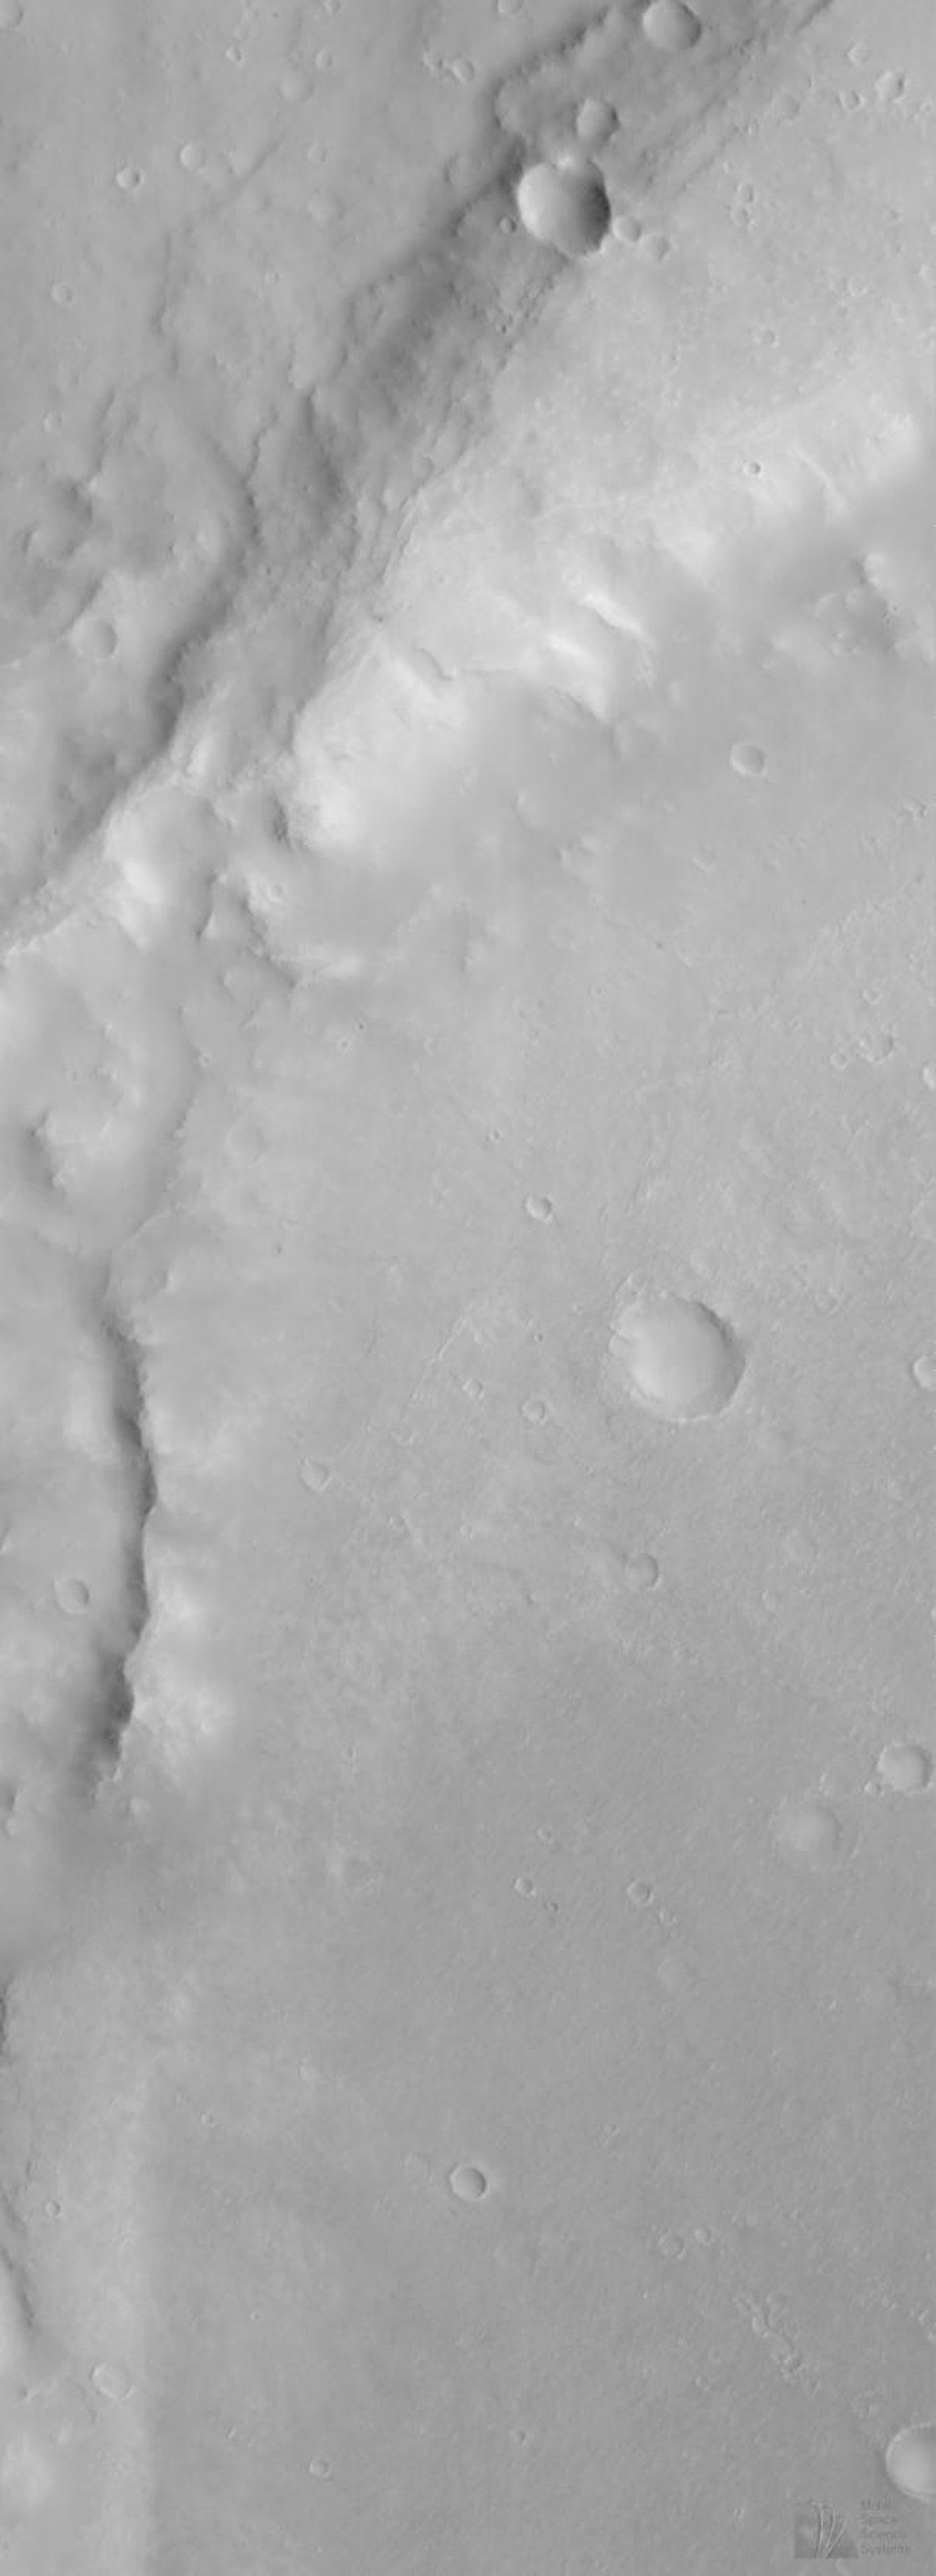 NASA's Mars Global Surveyor acquired this image on June 10, 1998. Shown here is an eroded portion of the thick ejecta (material thrown out of an impact crater during its formation) from a very large impact basin, Huygens.